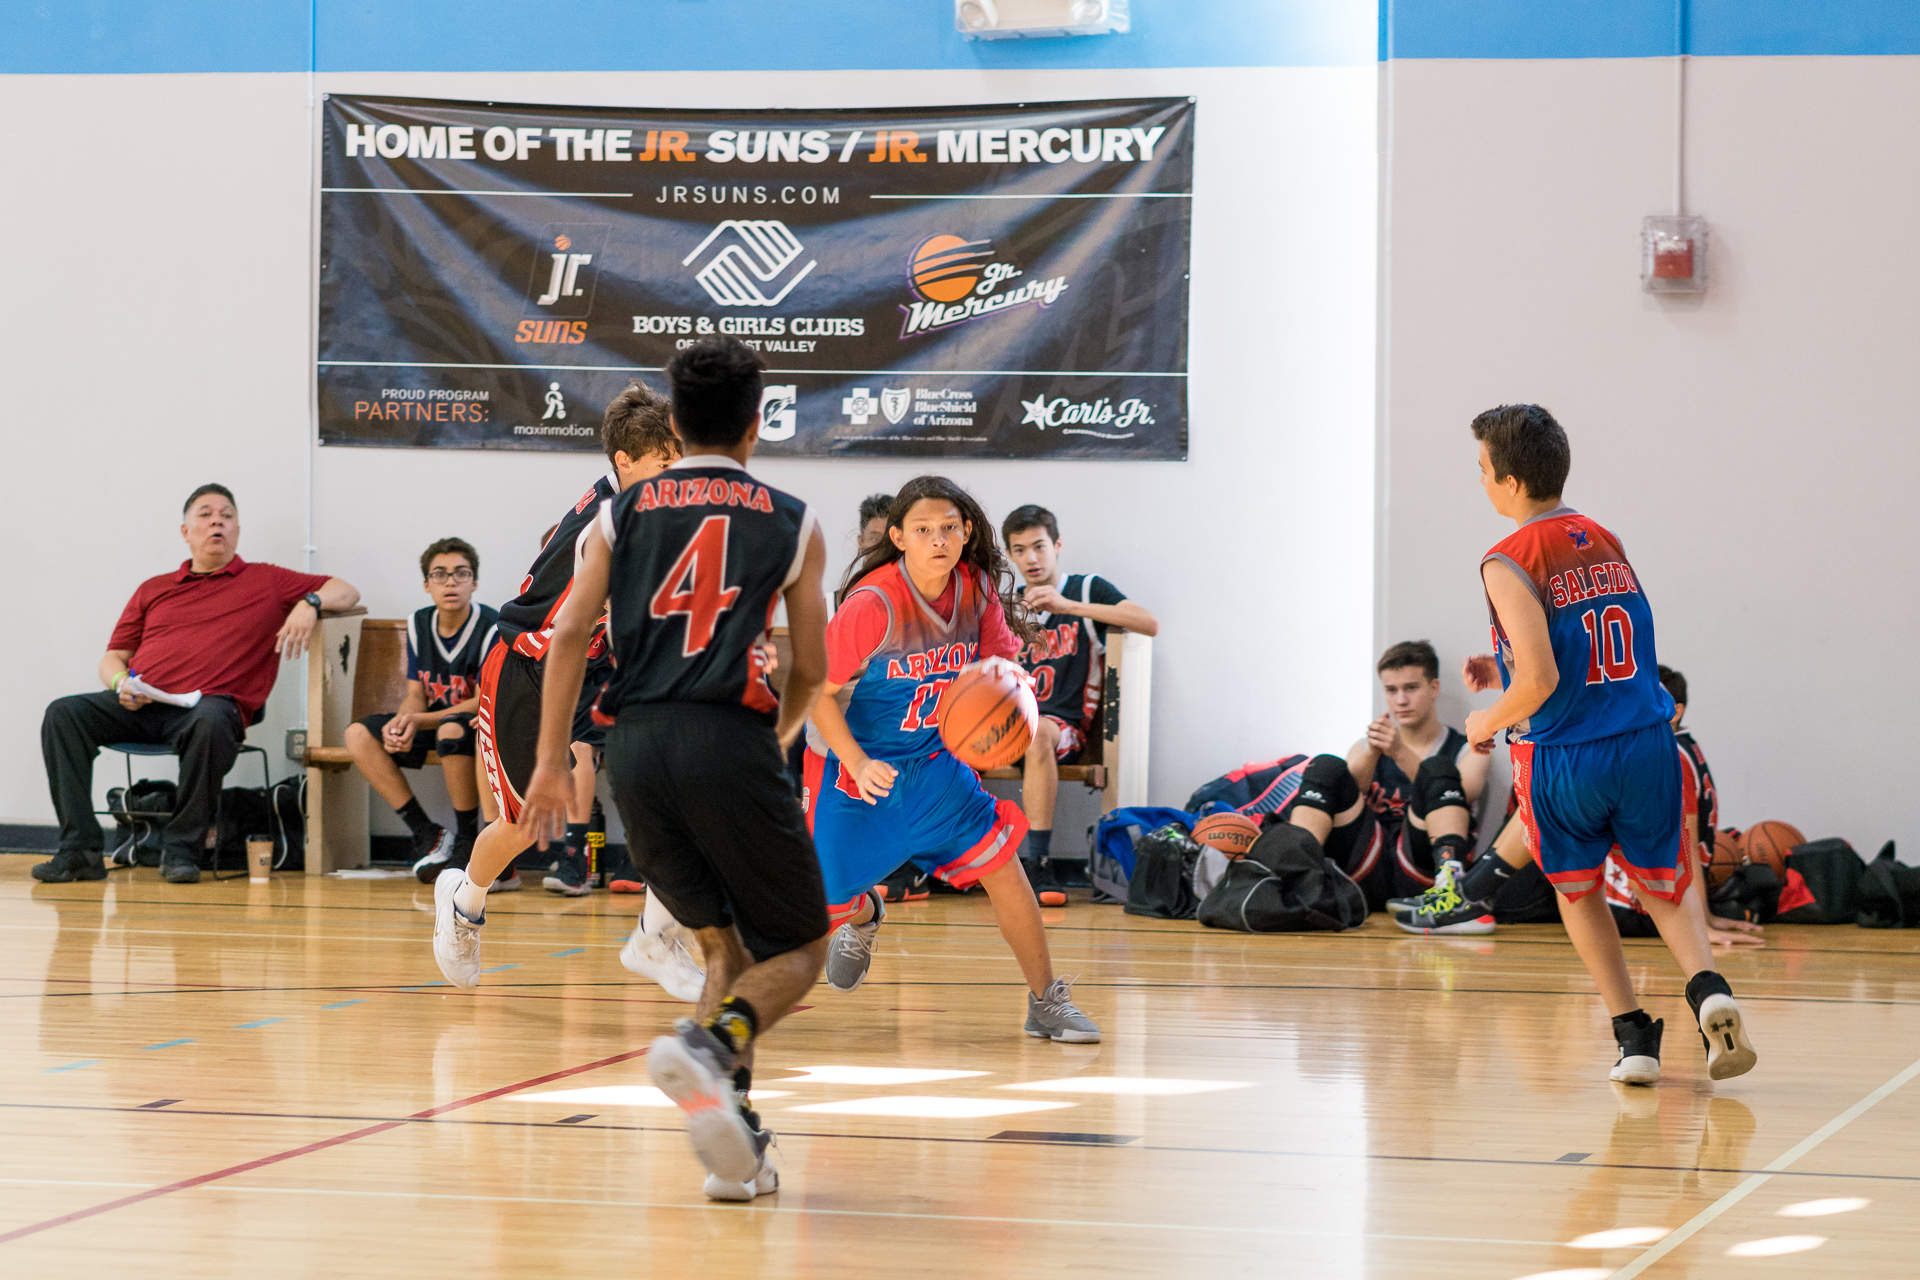 East Valley basketball club Player playing defense